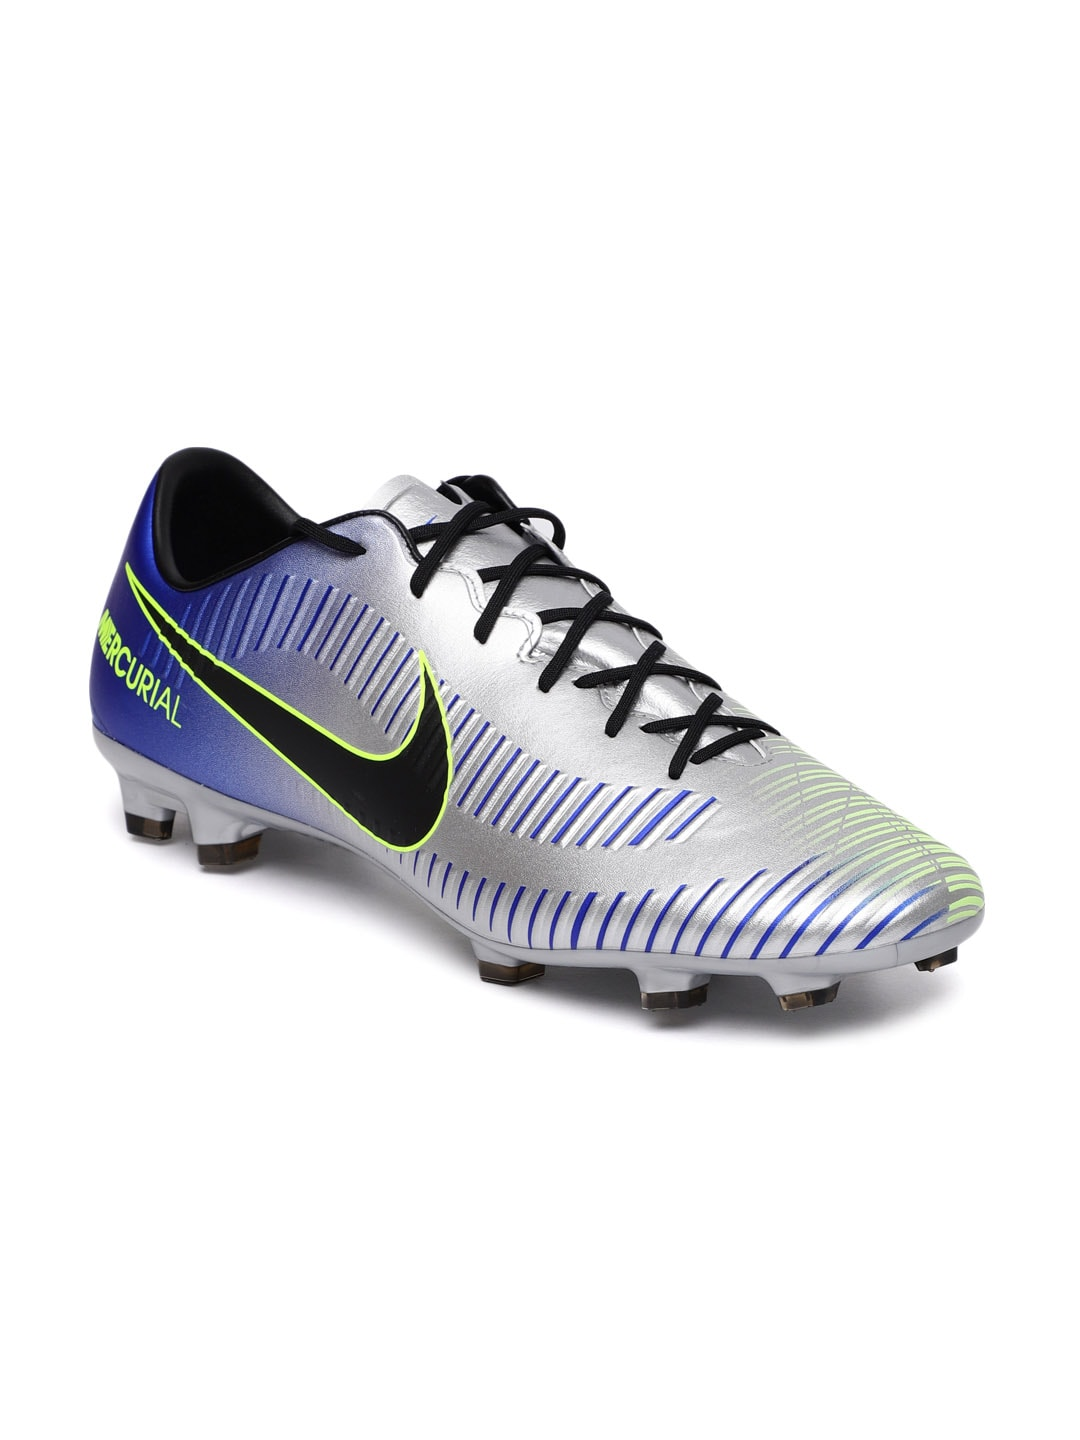 65e24329a157 Nike Mercurial Vapor - Buy Nike Mercurial Vapor online in India